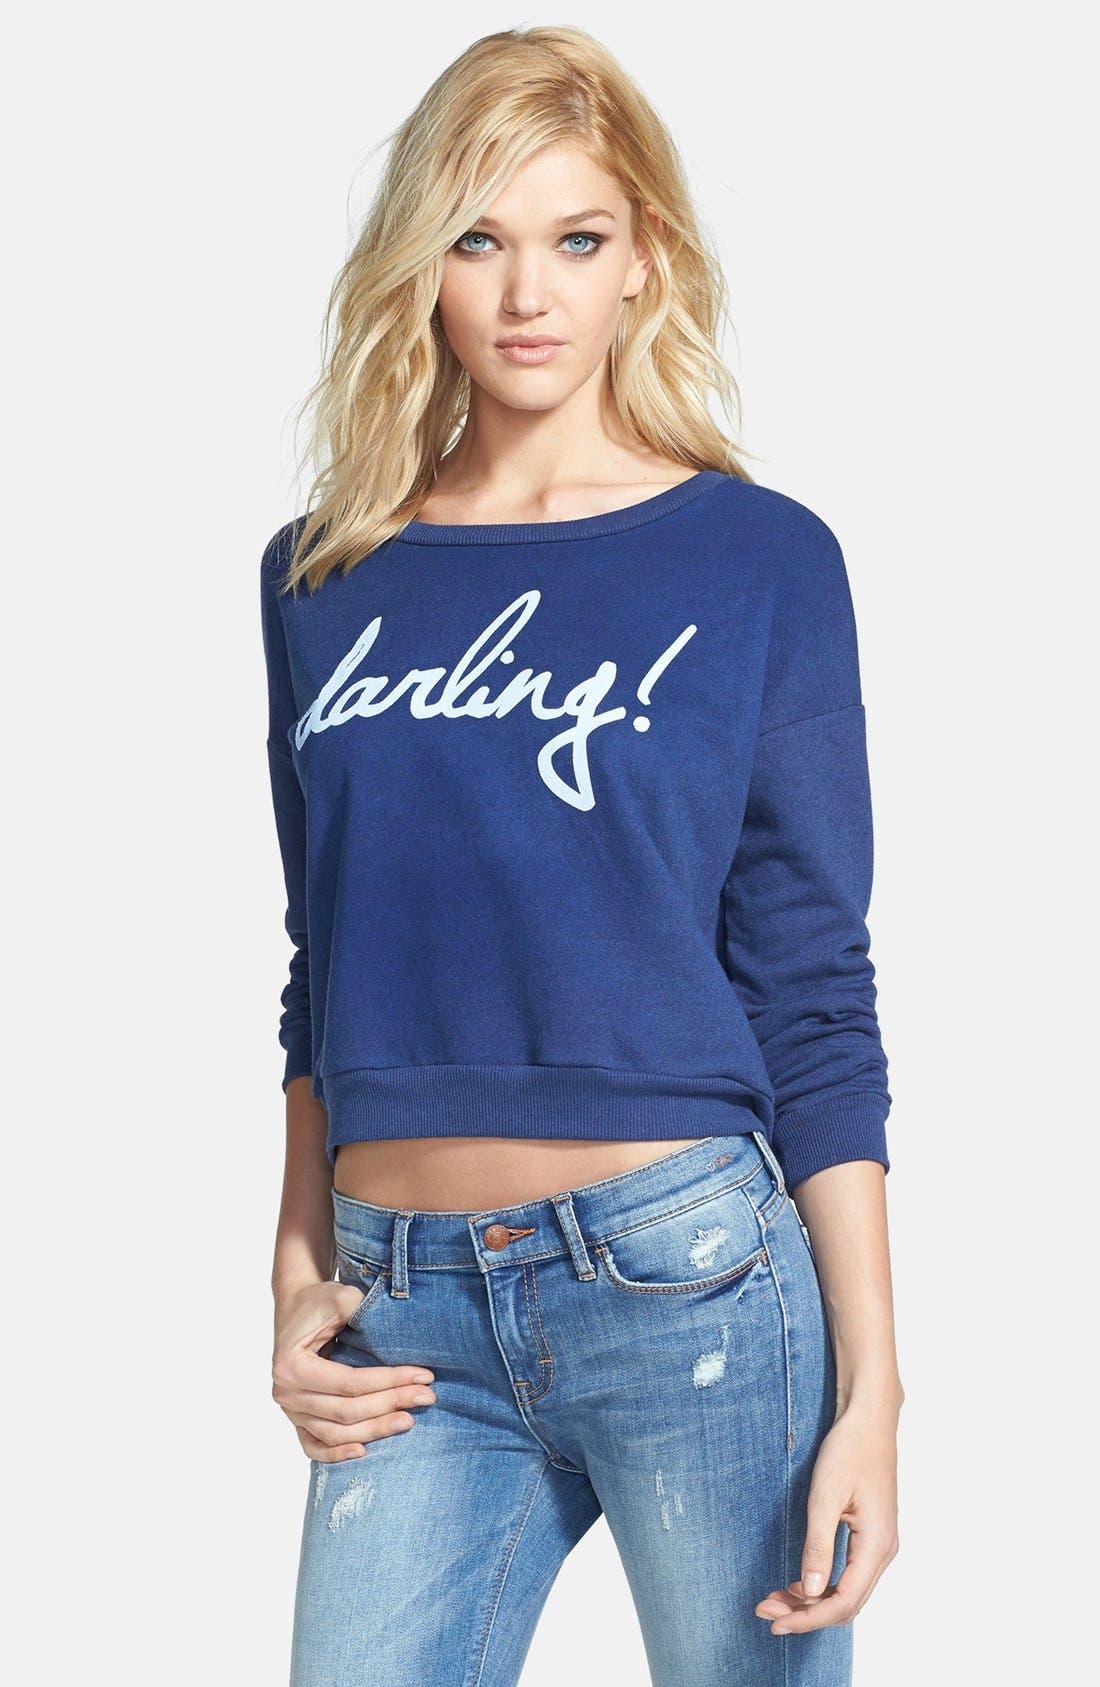 Alternate Image 1 Selected - Madison & Berkeley 'Darling' Boatneck Knit Sweatshirt